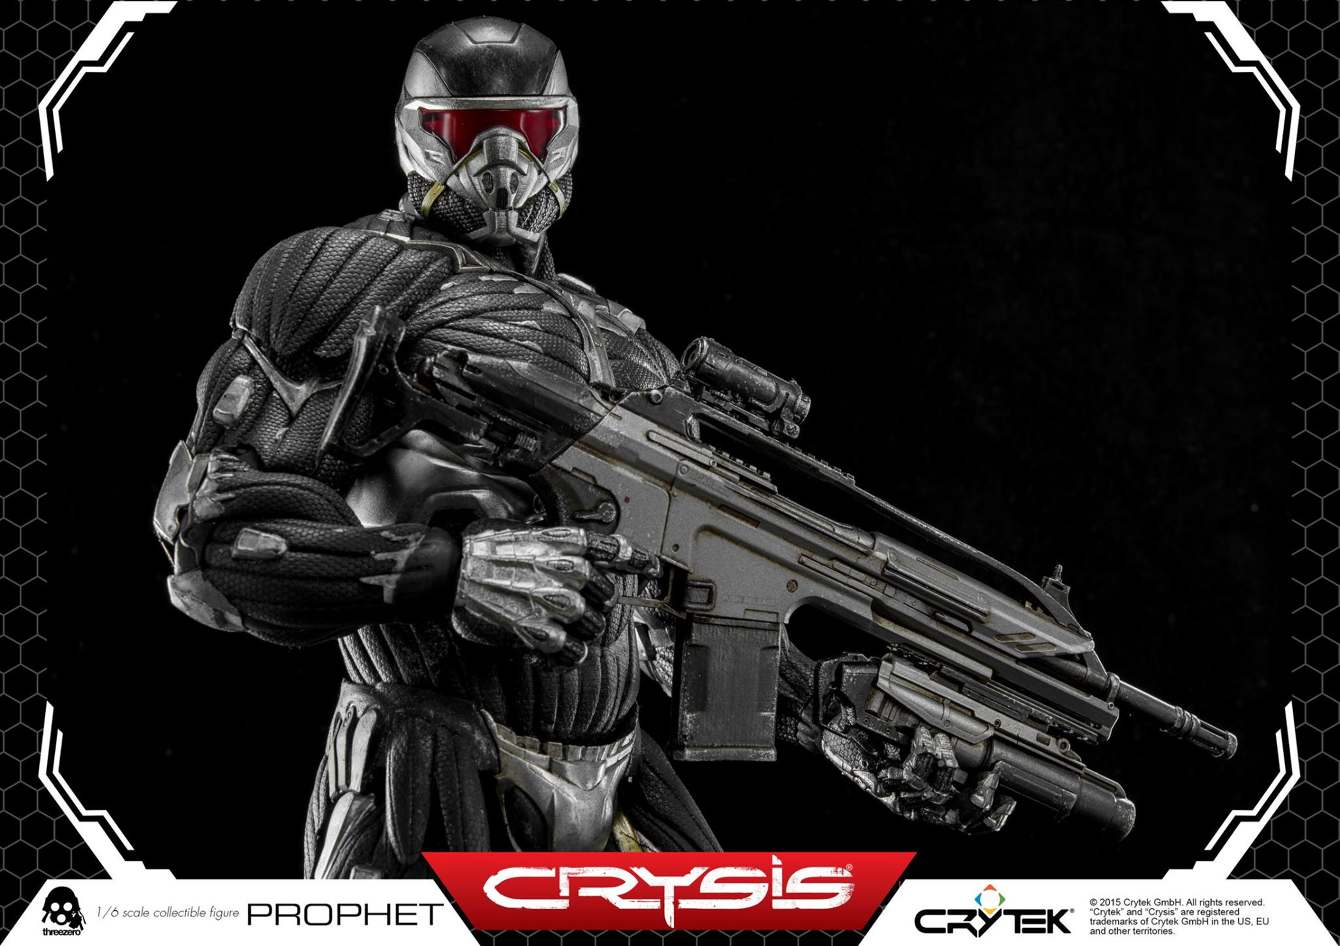 ThreeZero-Crysis-video-game-Prophet-CRY14_1340_c.jpg